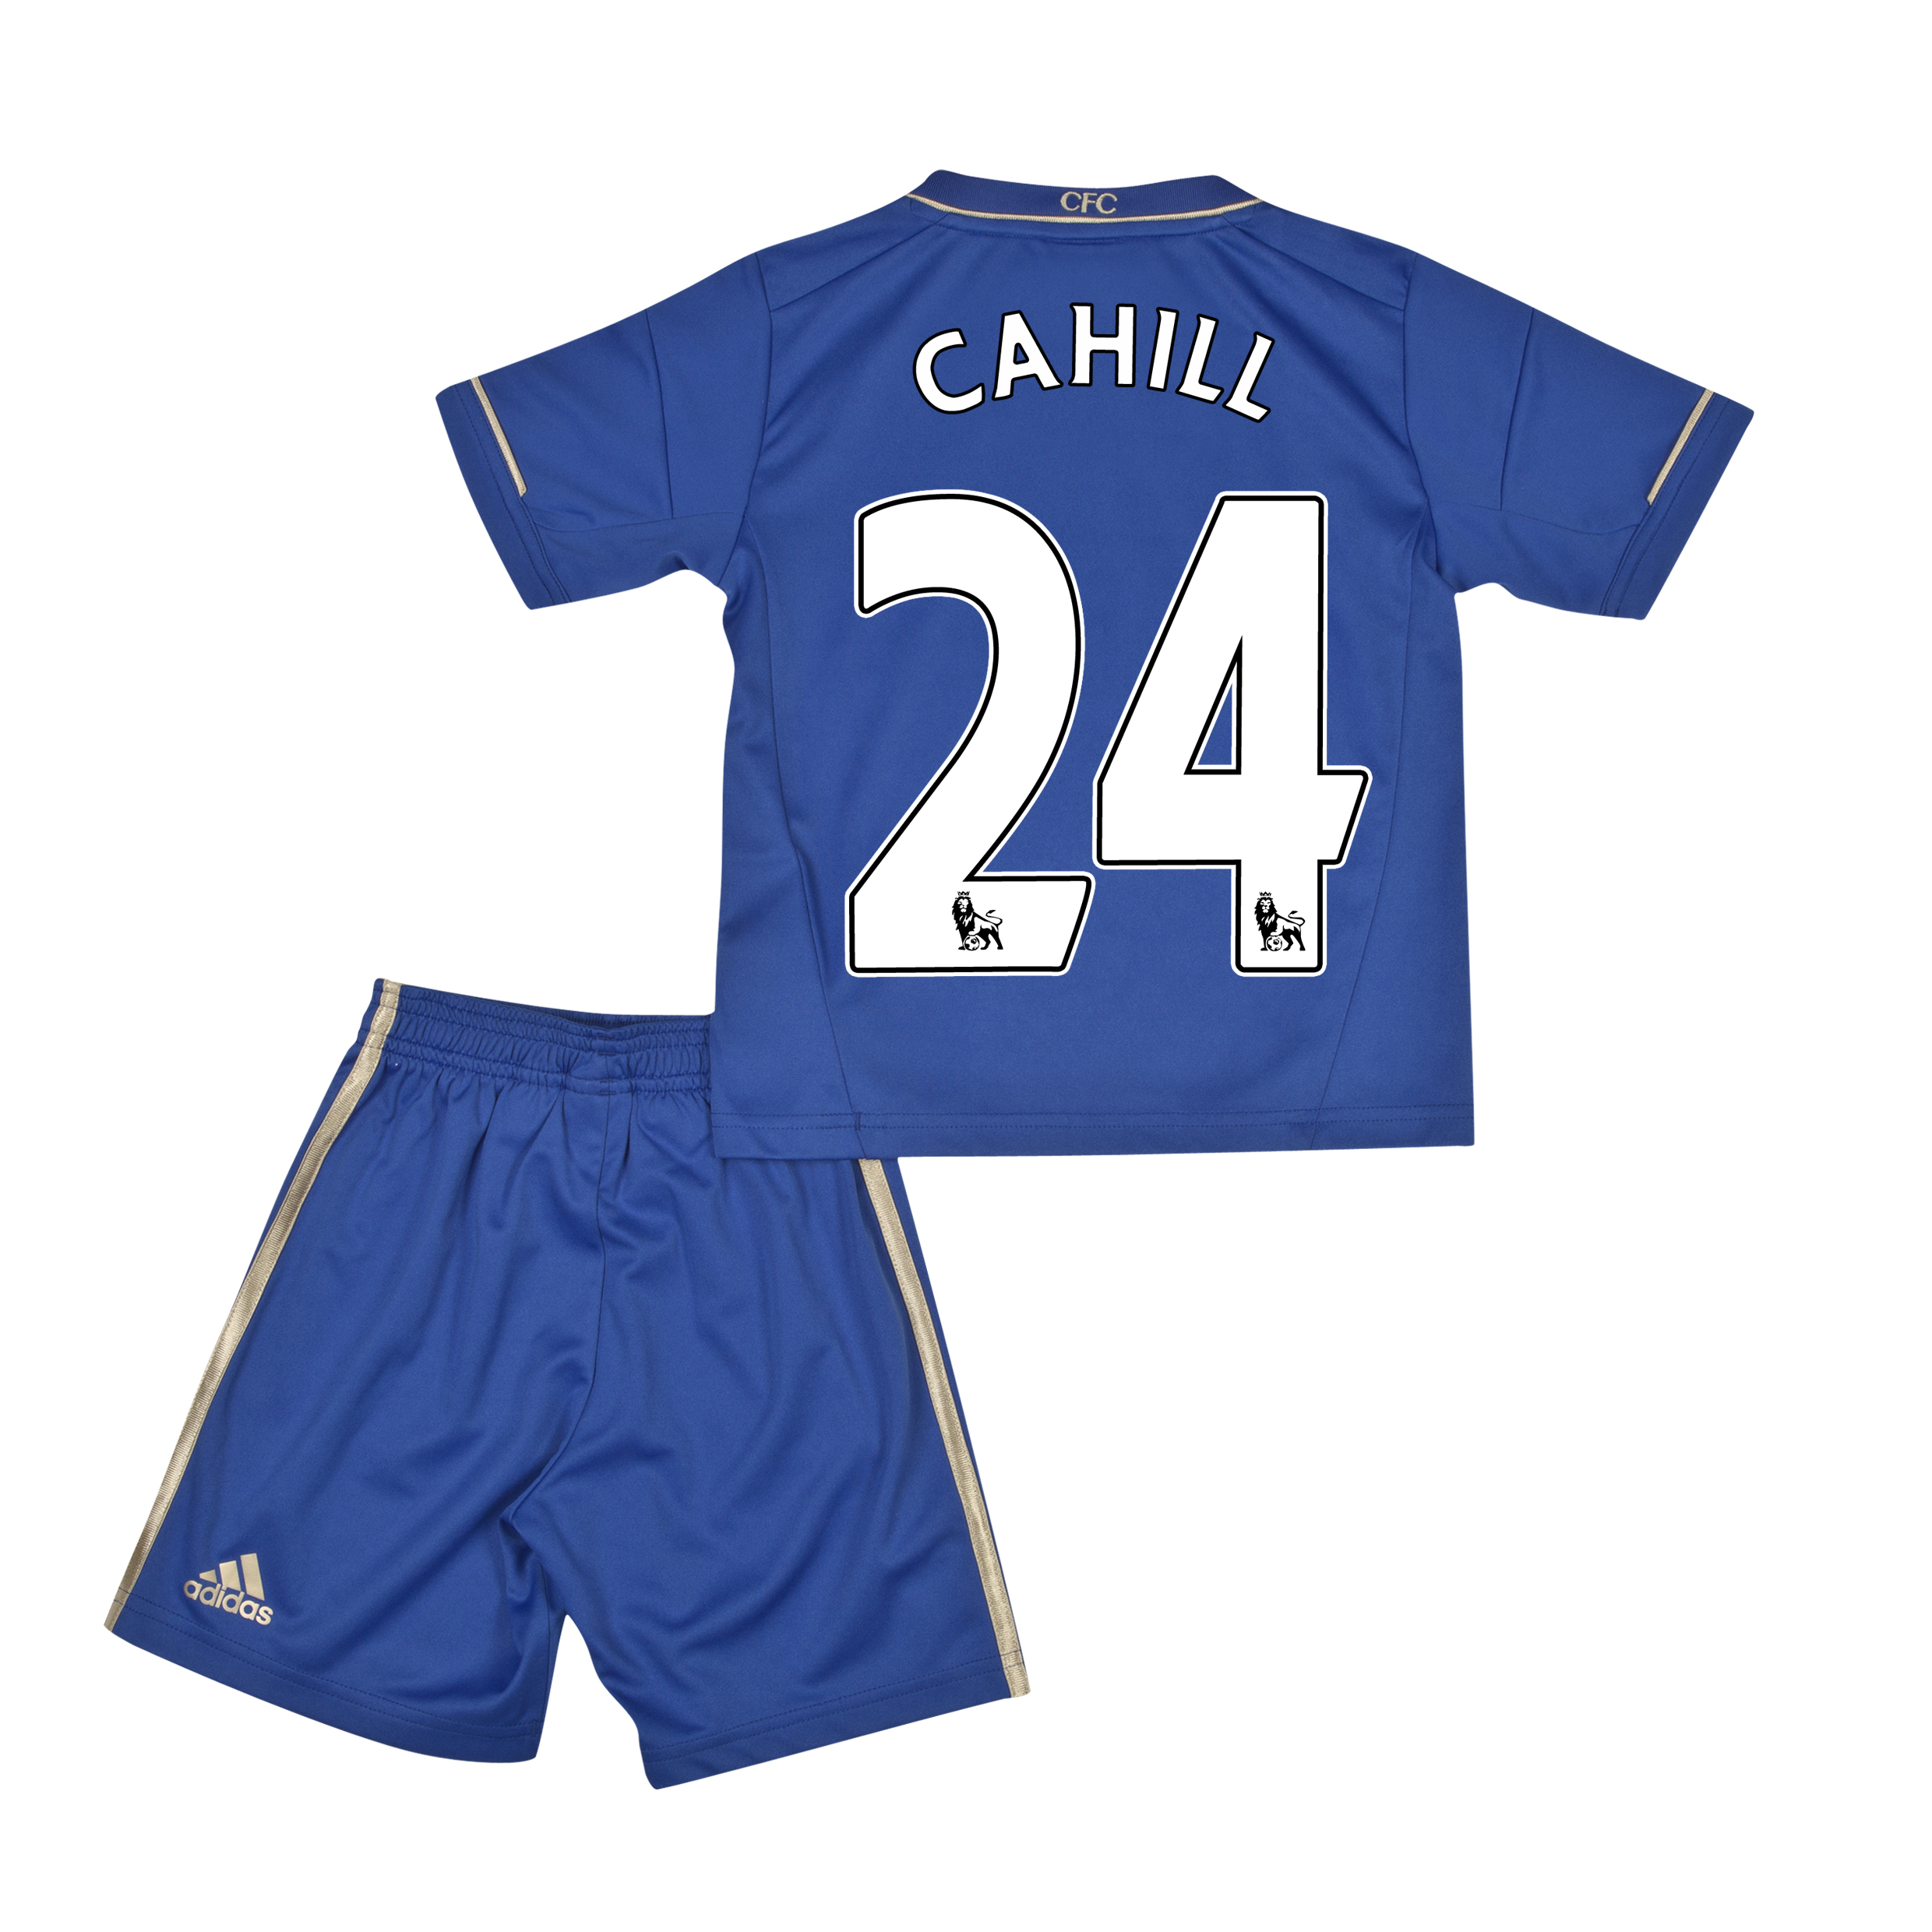 Chelsea Home Mini Kit 2012/13 with Cahill 24 printing